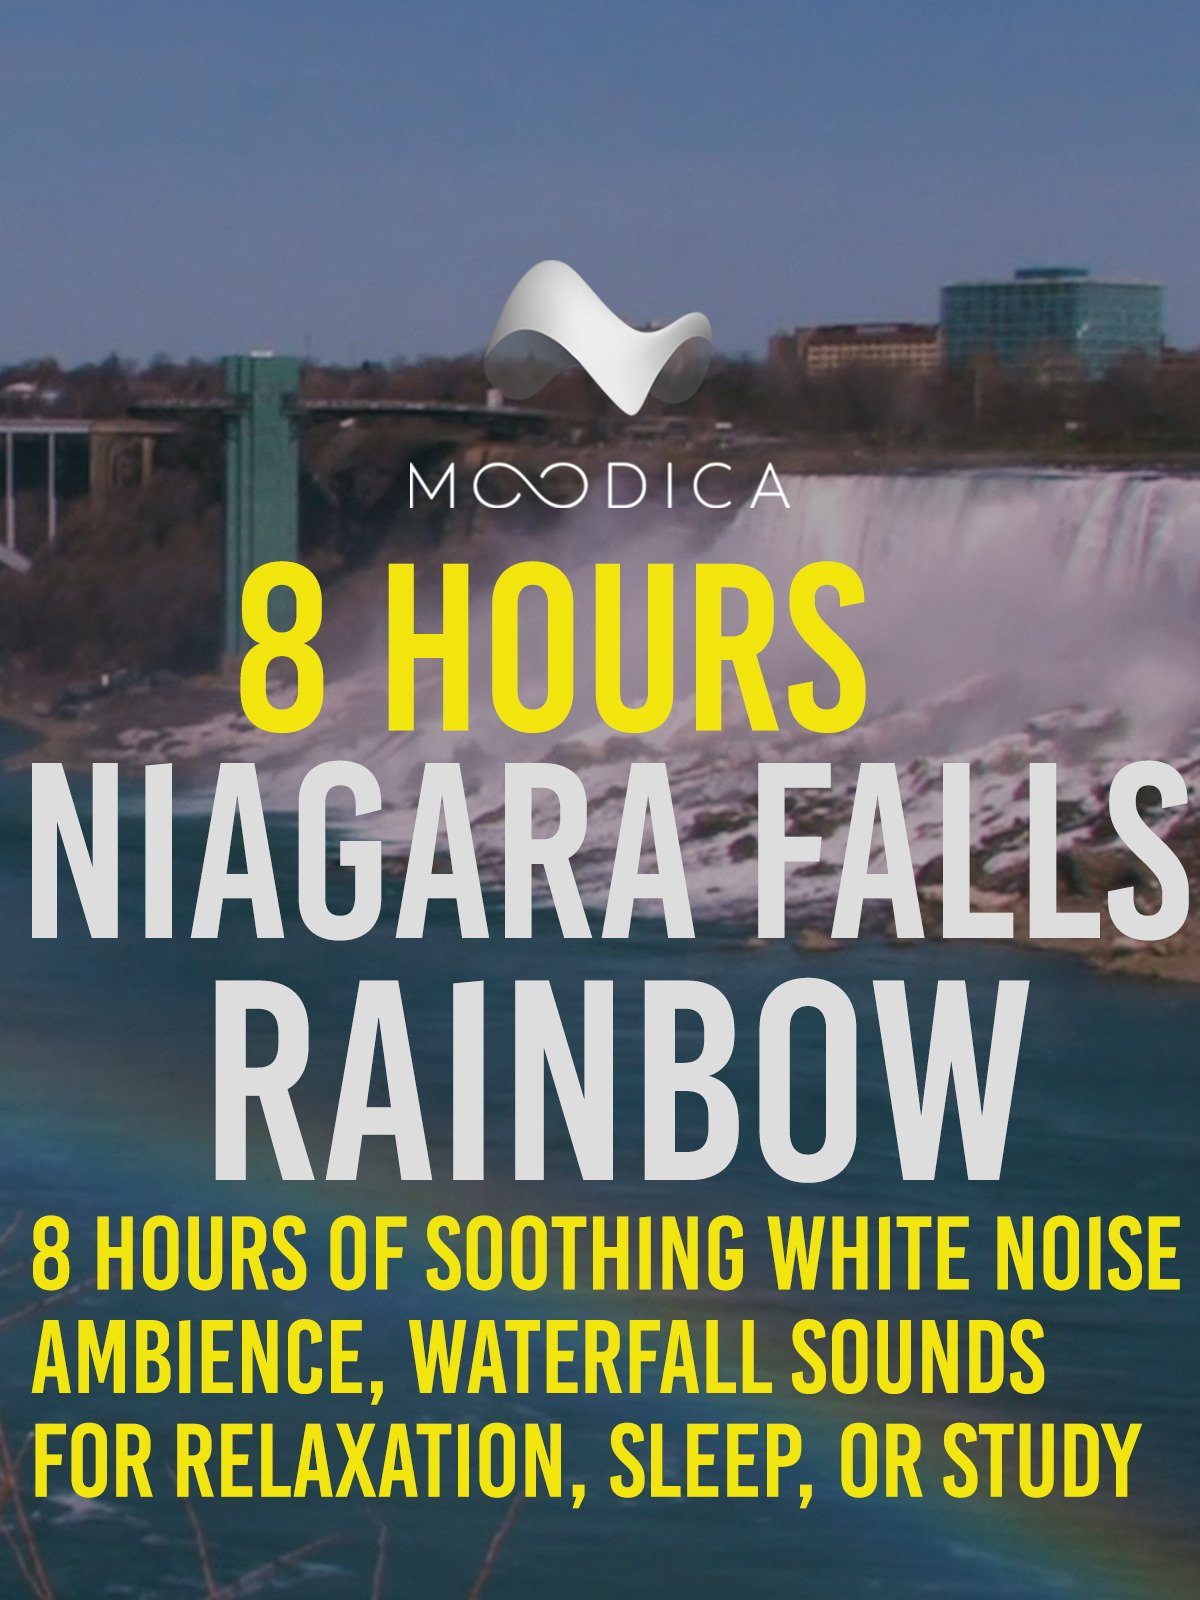 8 Hours: Niagara Falls Rainbow: 8 Hours of Soothing White Noise Ambience, Waterfall Sounds for Relaxation, Sleep, or Study